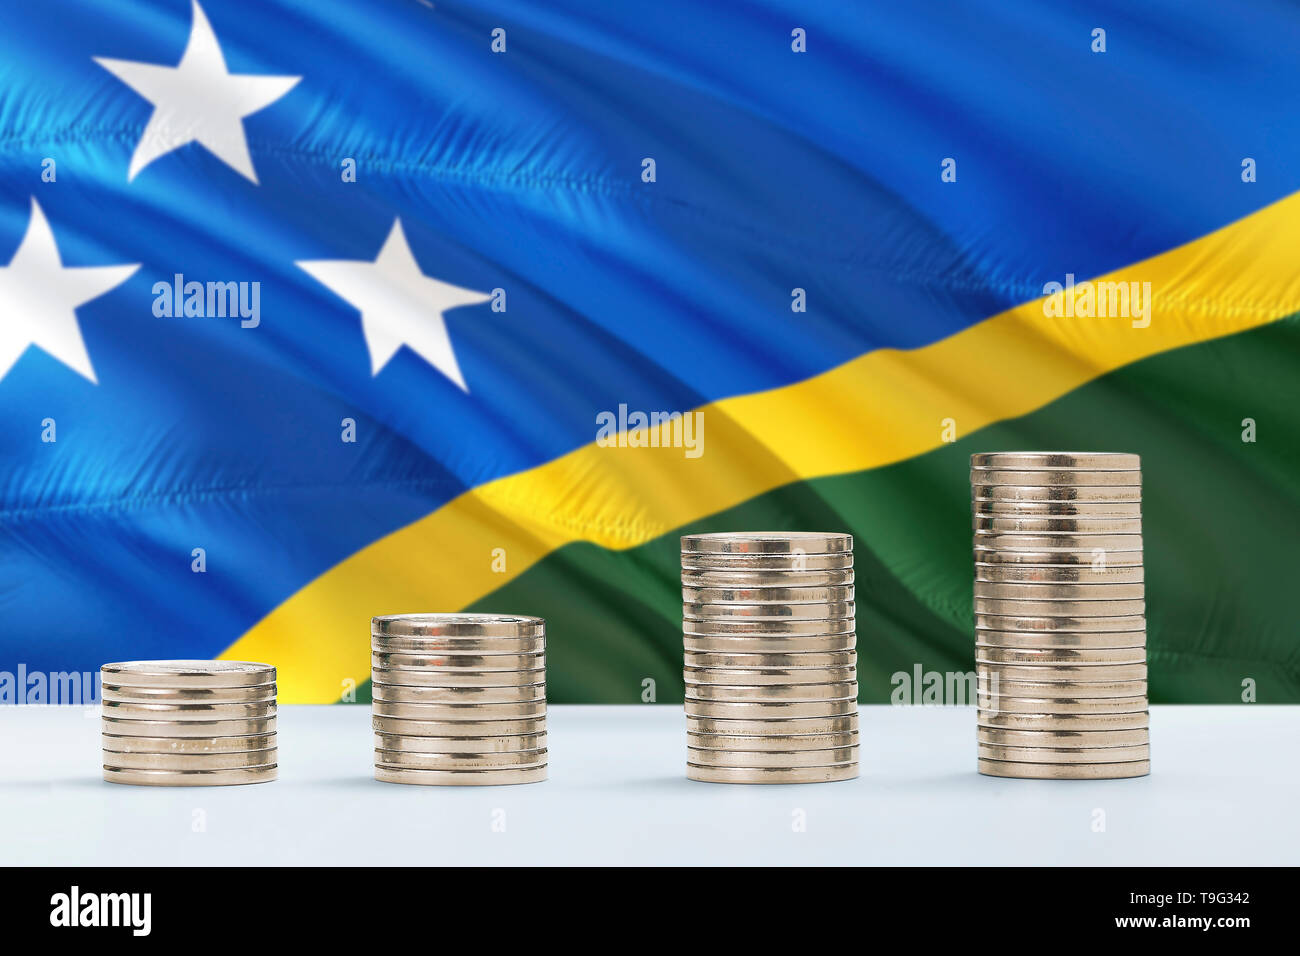 Solomon Islands flag waving in the background with rows of coins for finance and business concept. Saving money. - Stock Image